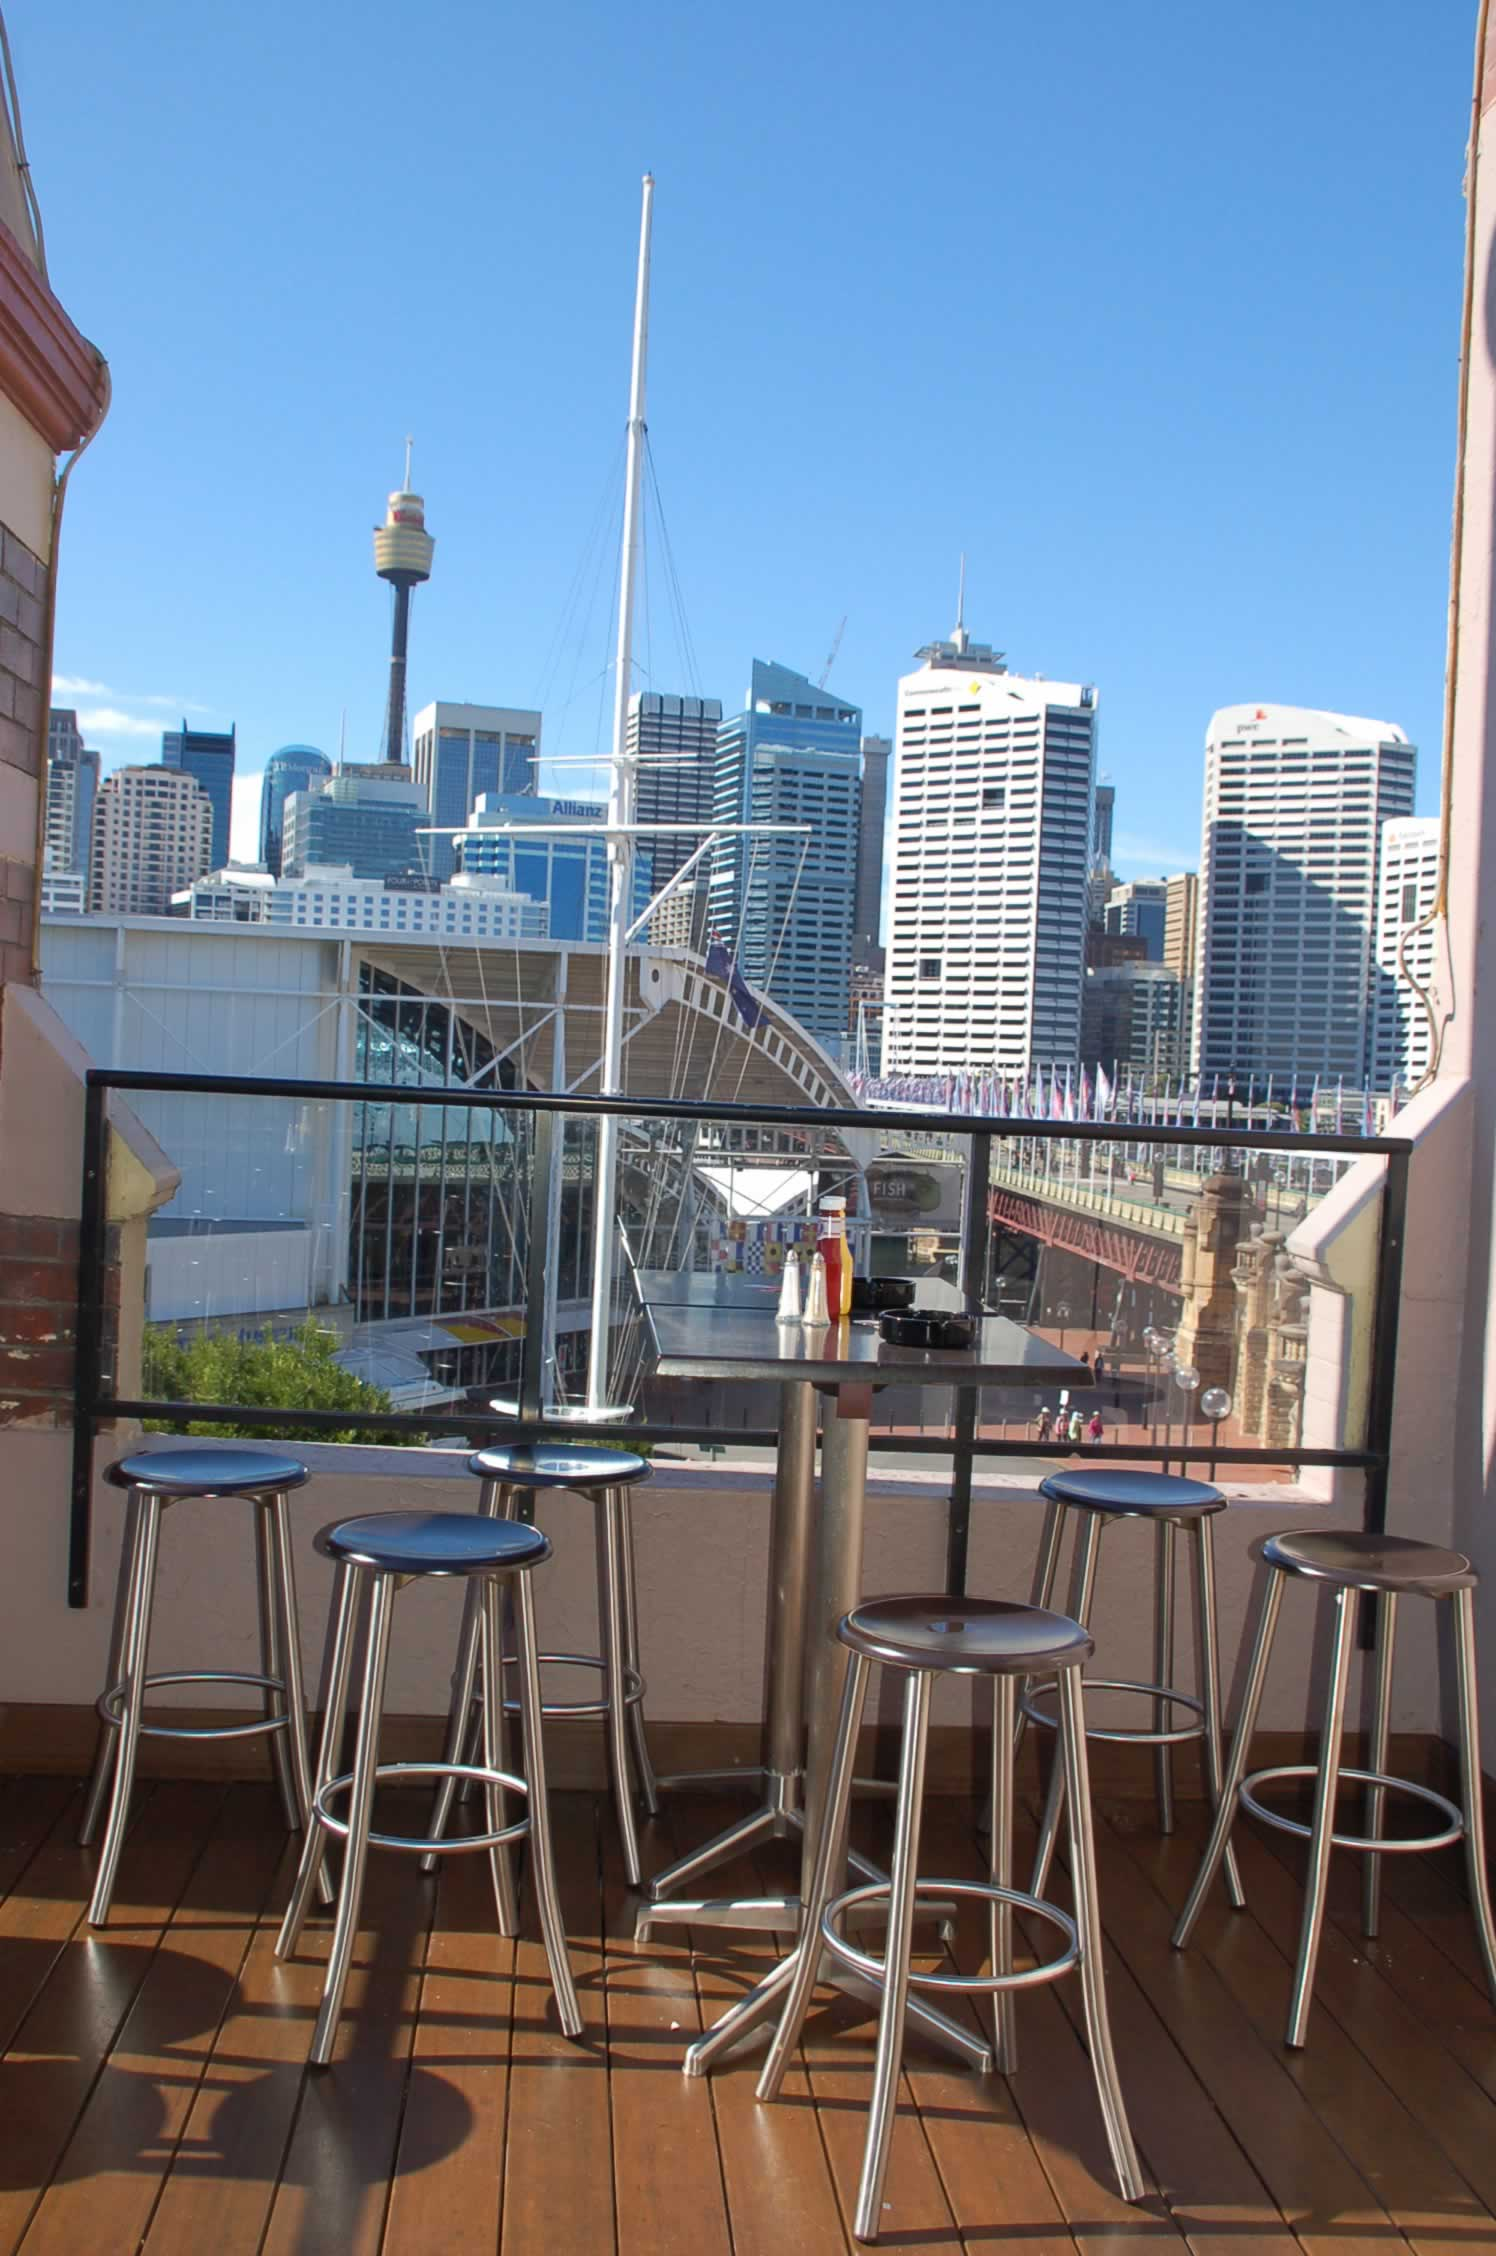 Pyrmont Function Room The Rooftop Terrace03